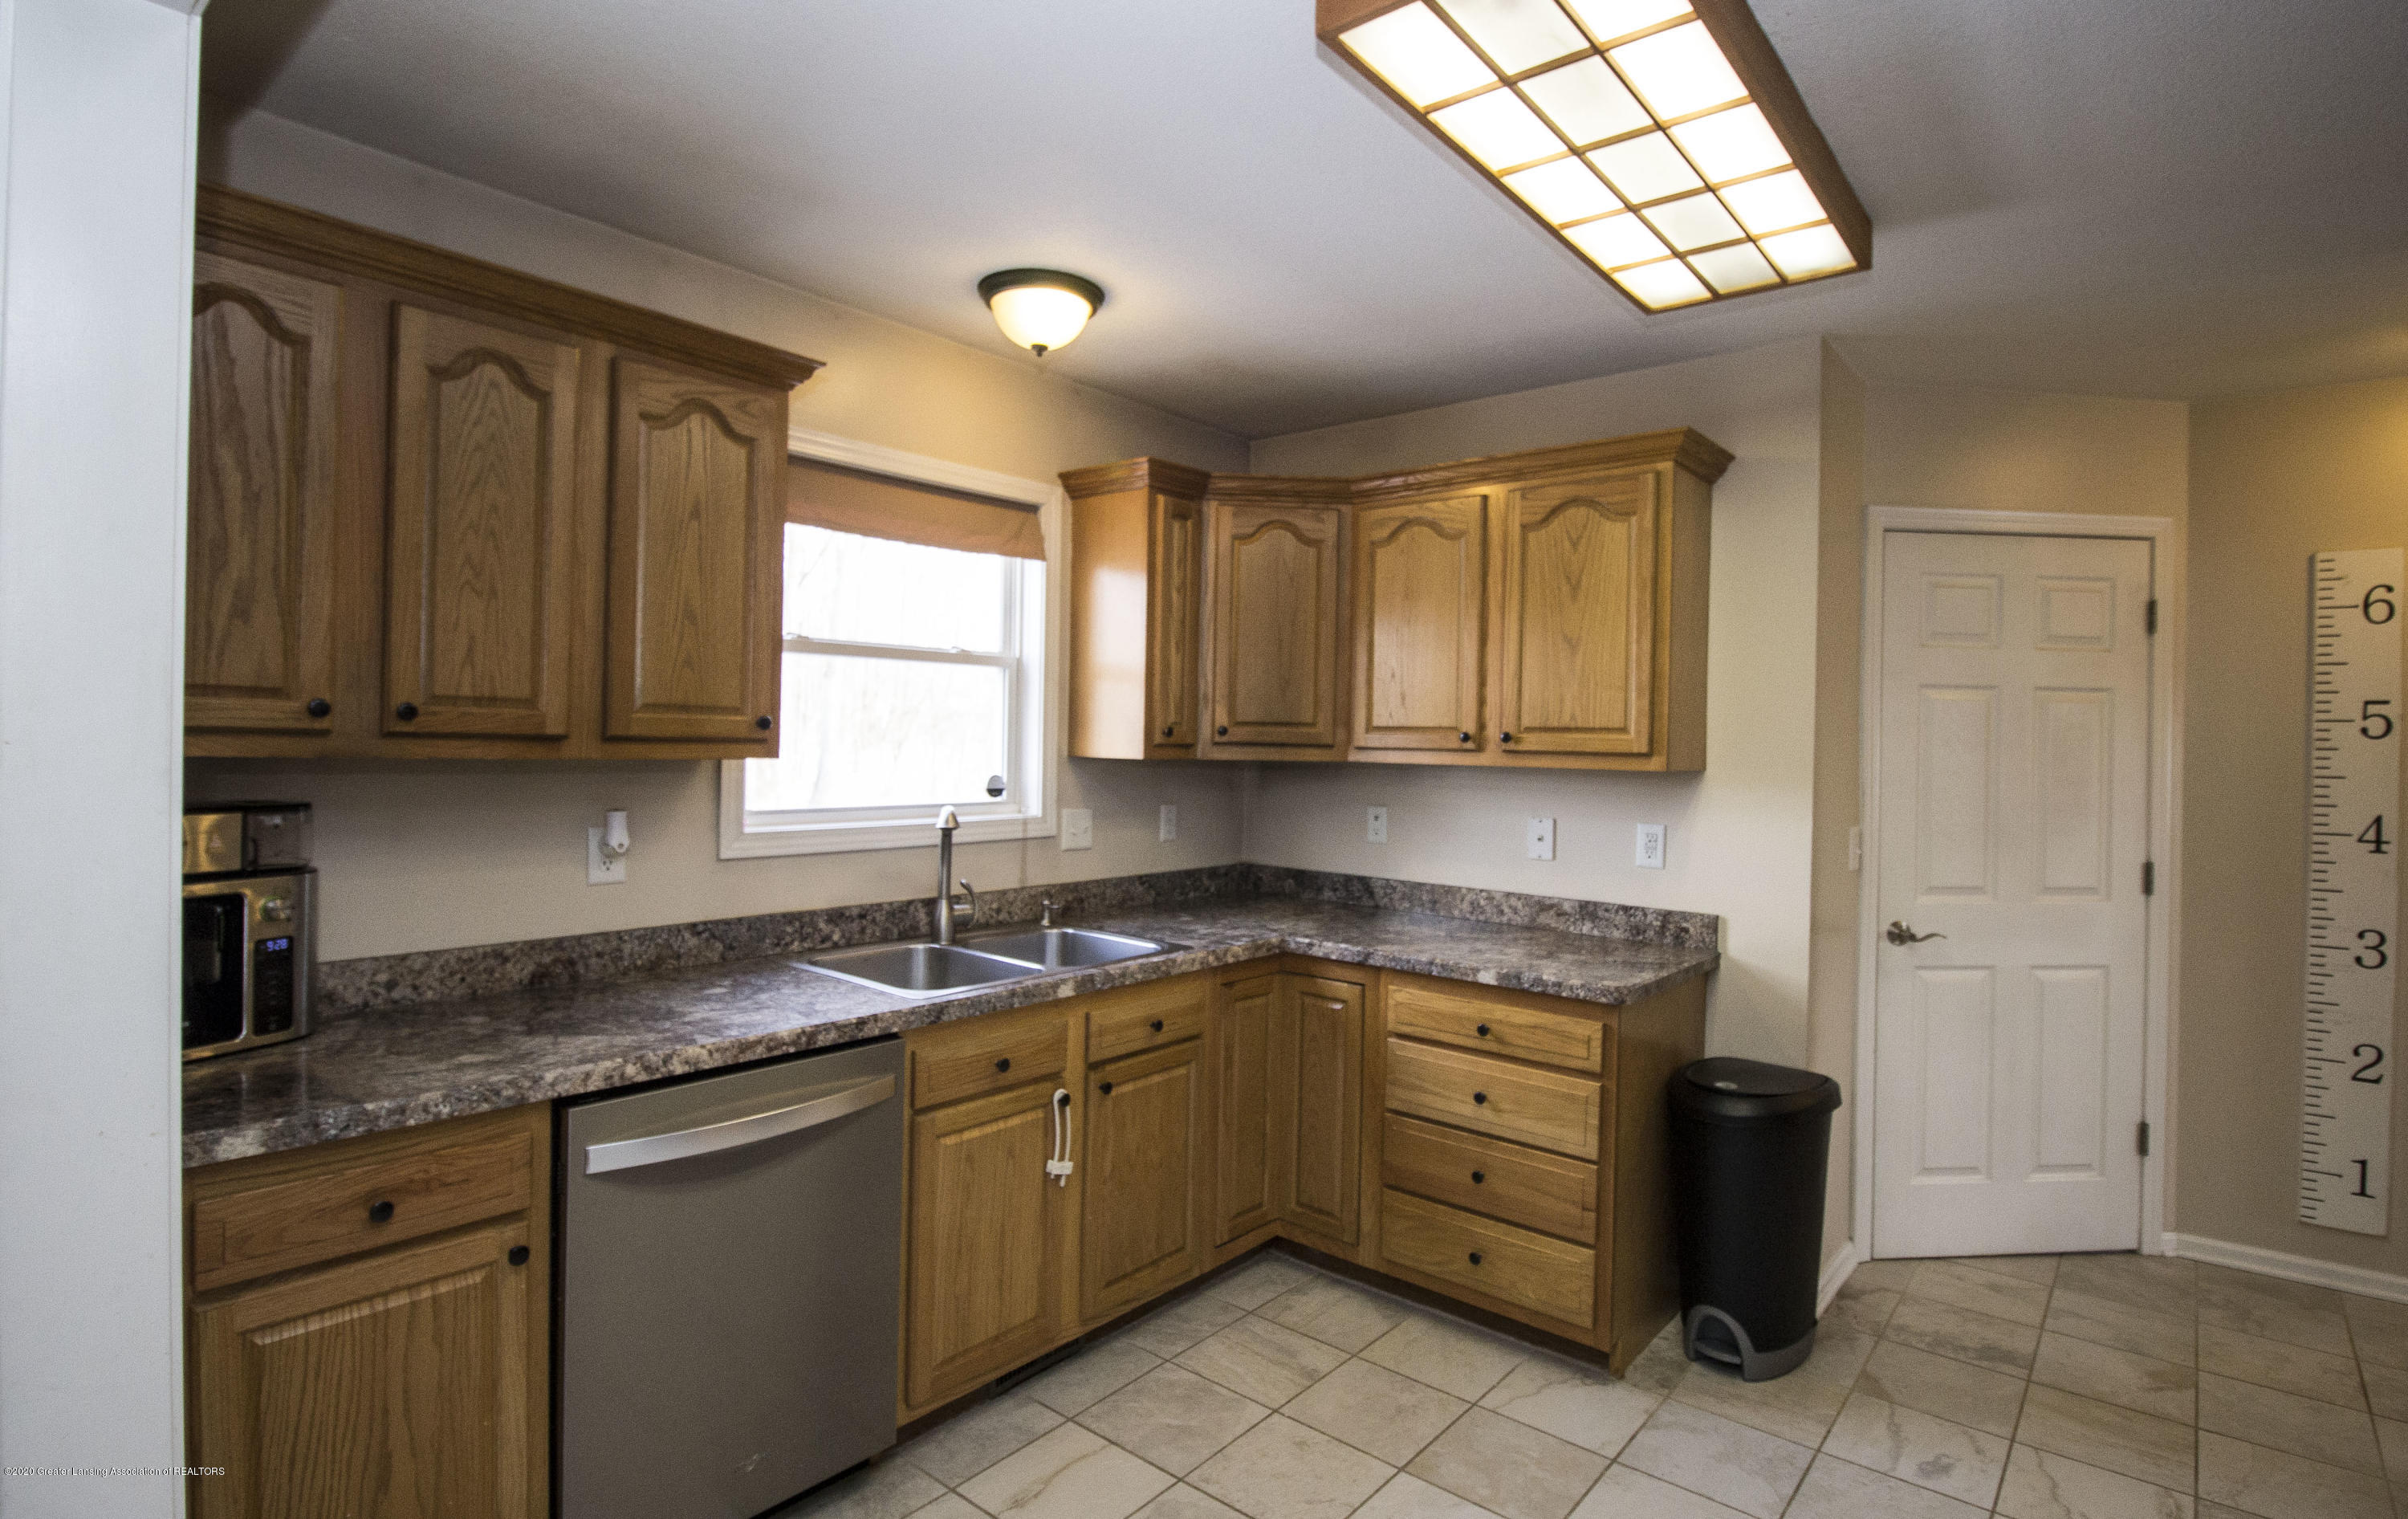 5498 Caplina Dr - Kitchen 3 - 12